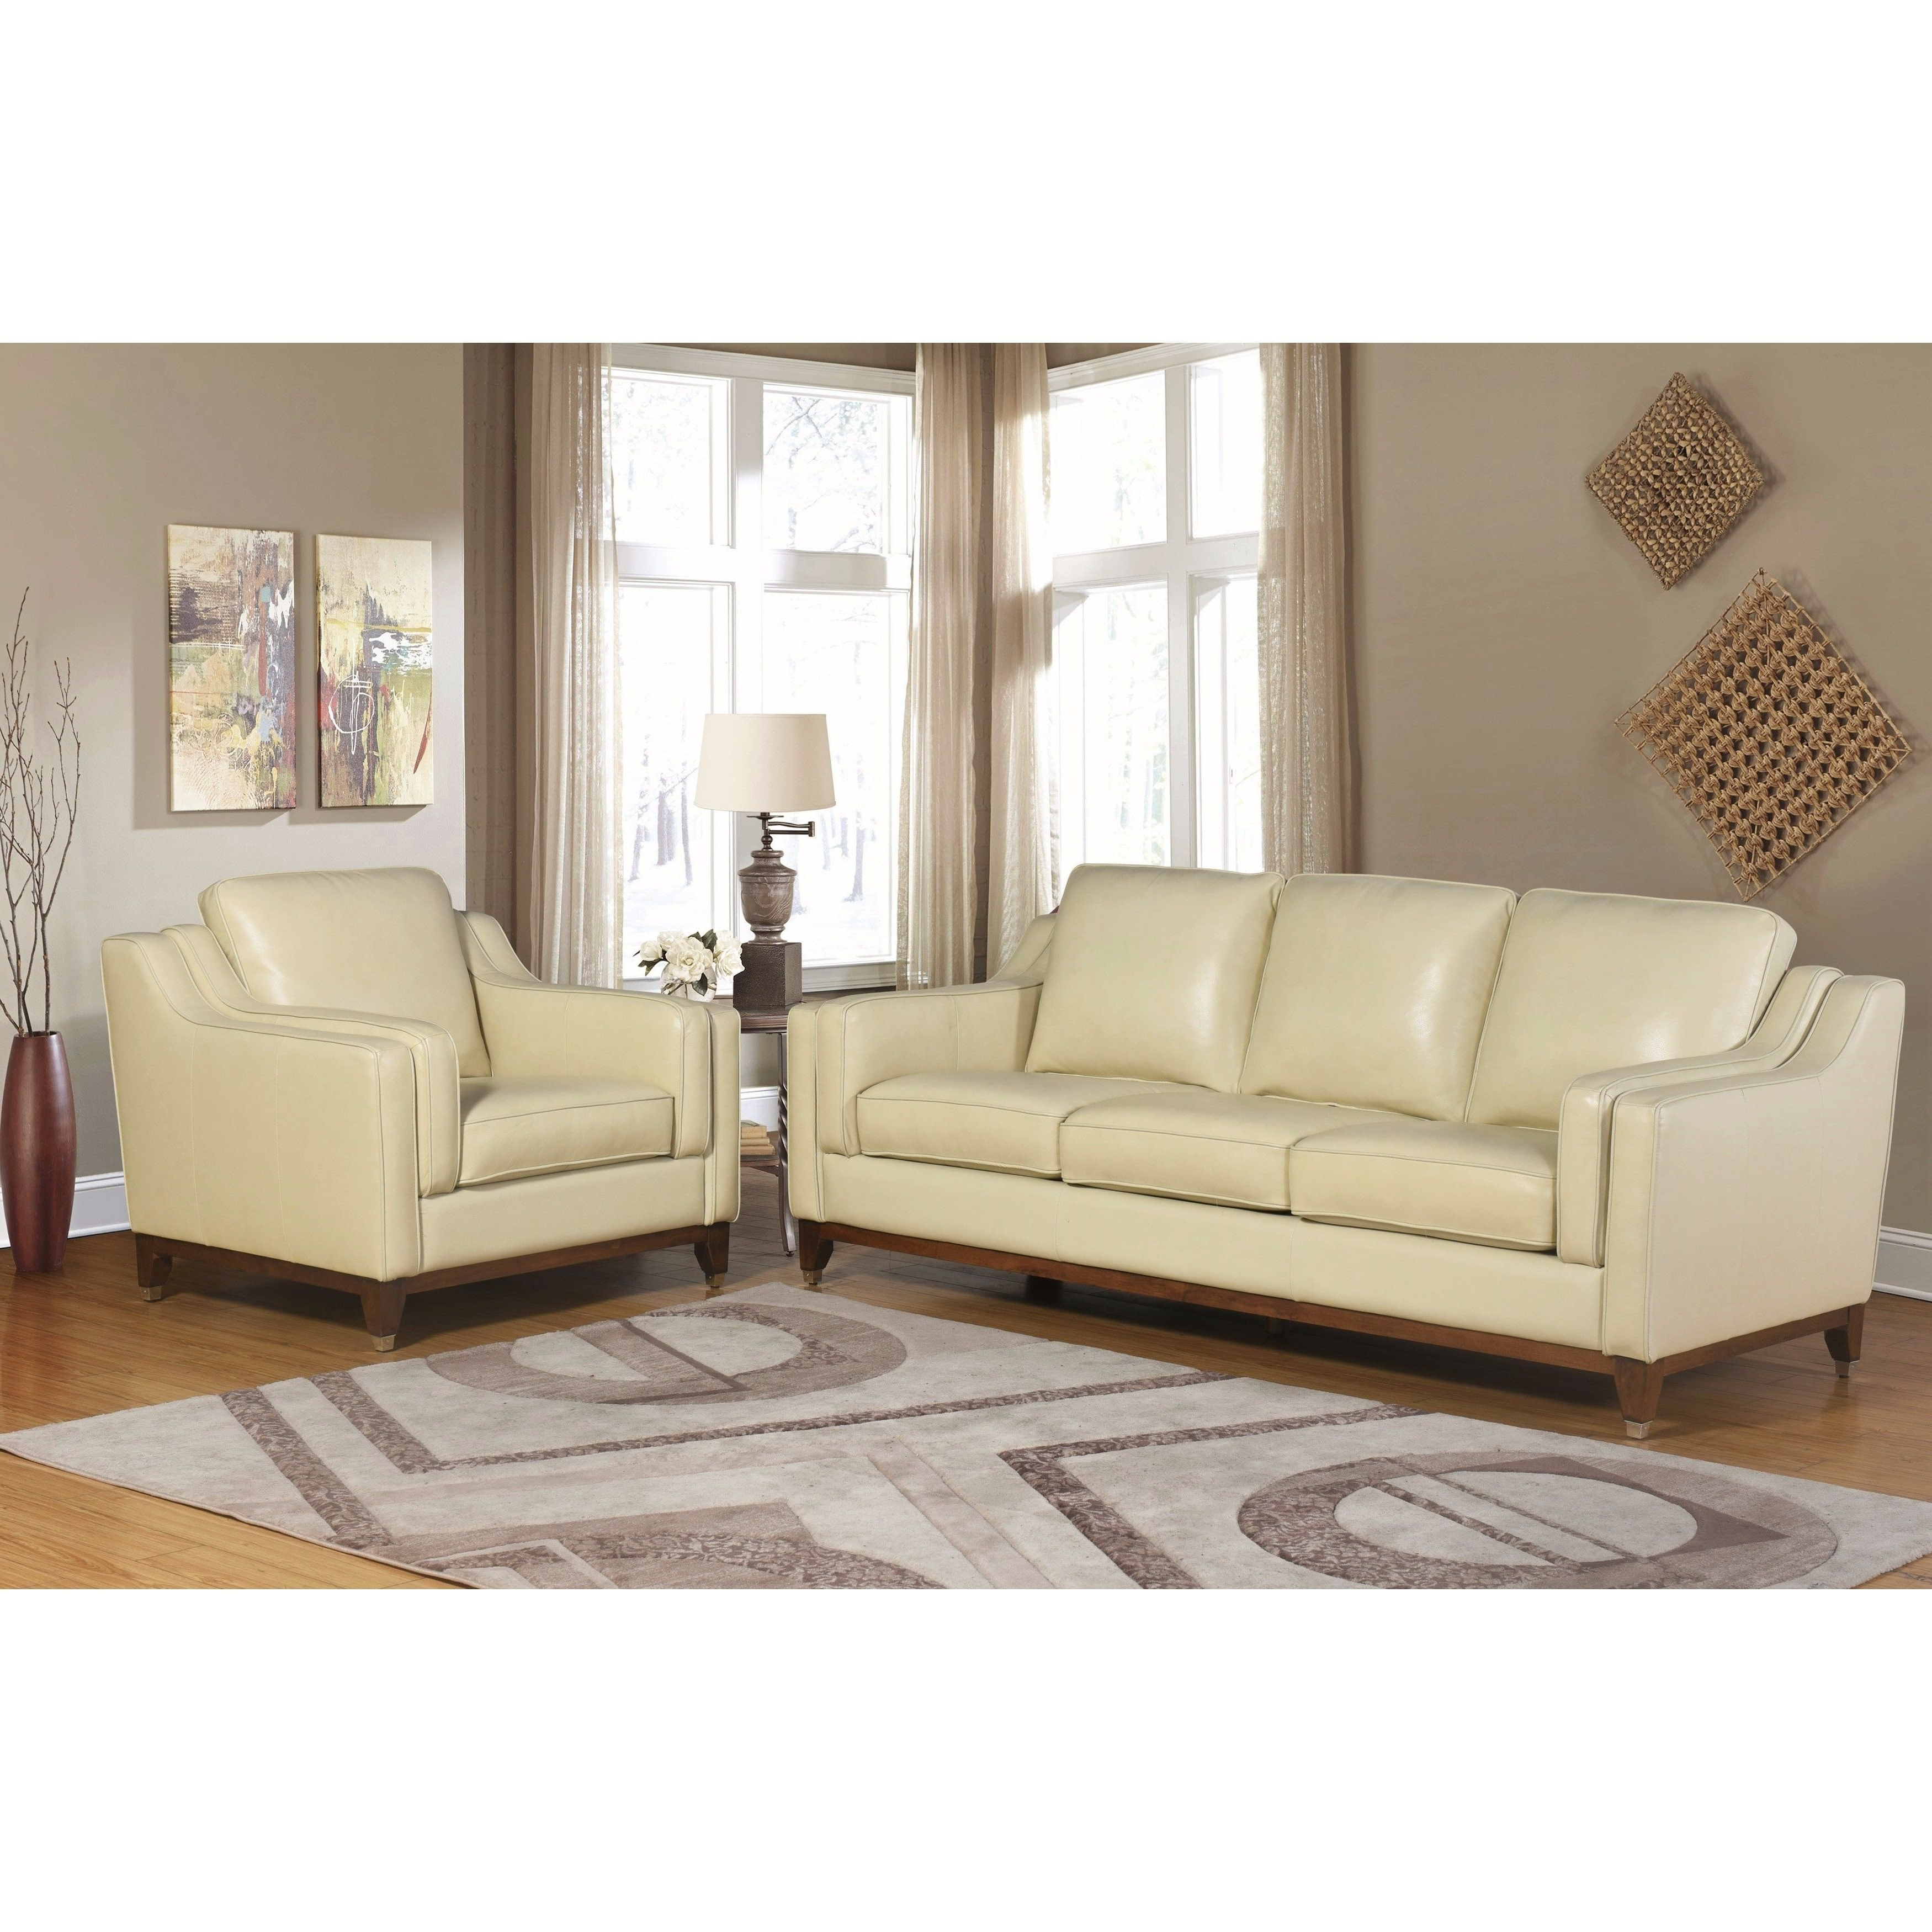 Well Liked Abbyson Allegra Cream (Ivory) Top Grain Leather 2 Piece Seating Set In Kristen Silver Grey 6 Piece Power Reclining Sectionals (View 20 of 20)